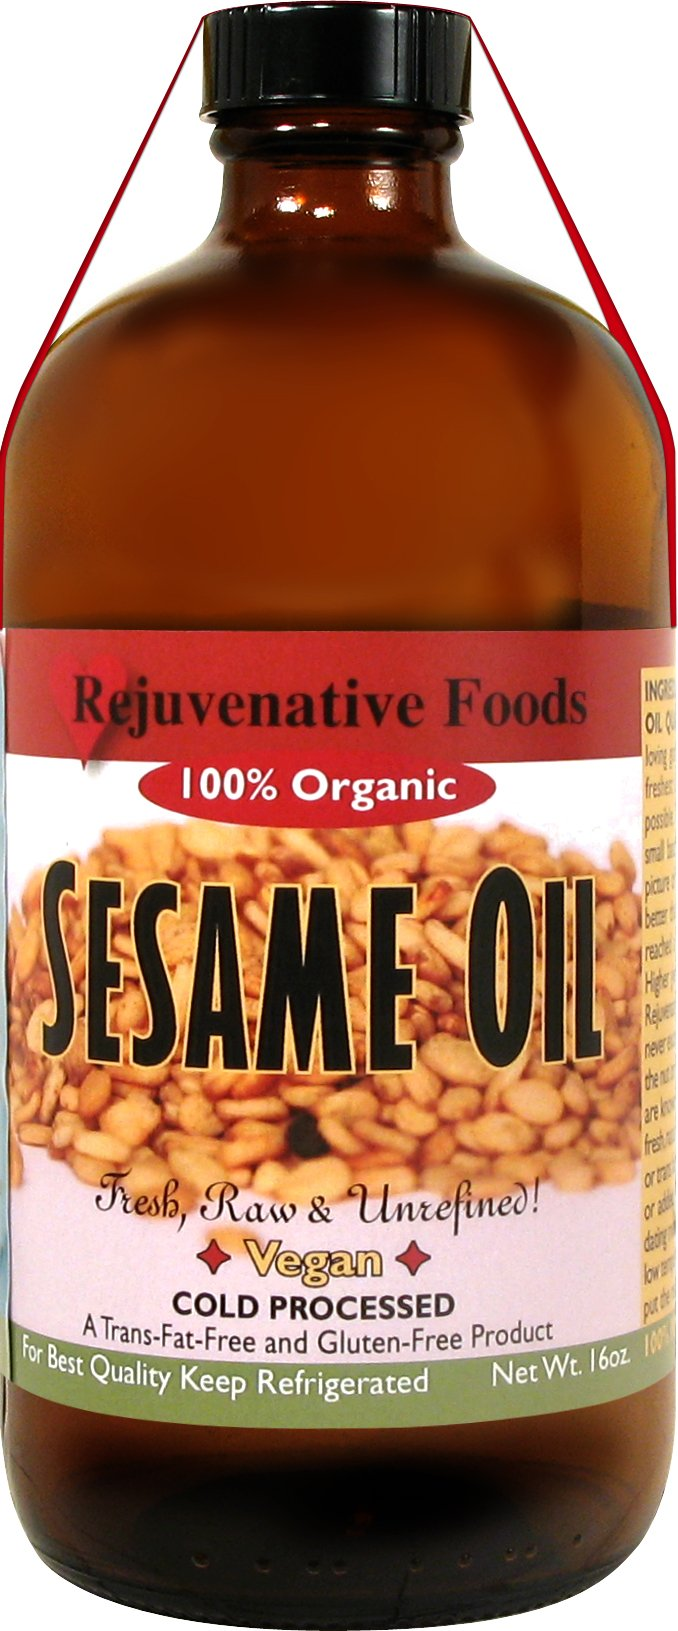 Rejuvenative Foods Virgin & Unrefined Certified Organic Sesame Seed Oil Pure and Fresh Raw Completely Low-Temp Pressed and Processed Food Grade Edible Culinary-32 oz by Rejuvenative Foods